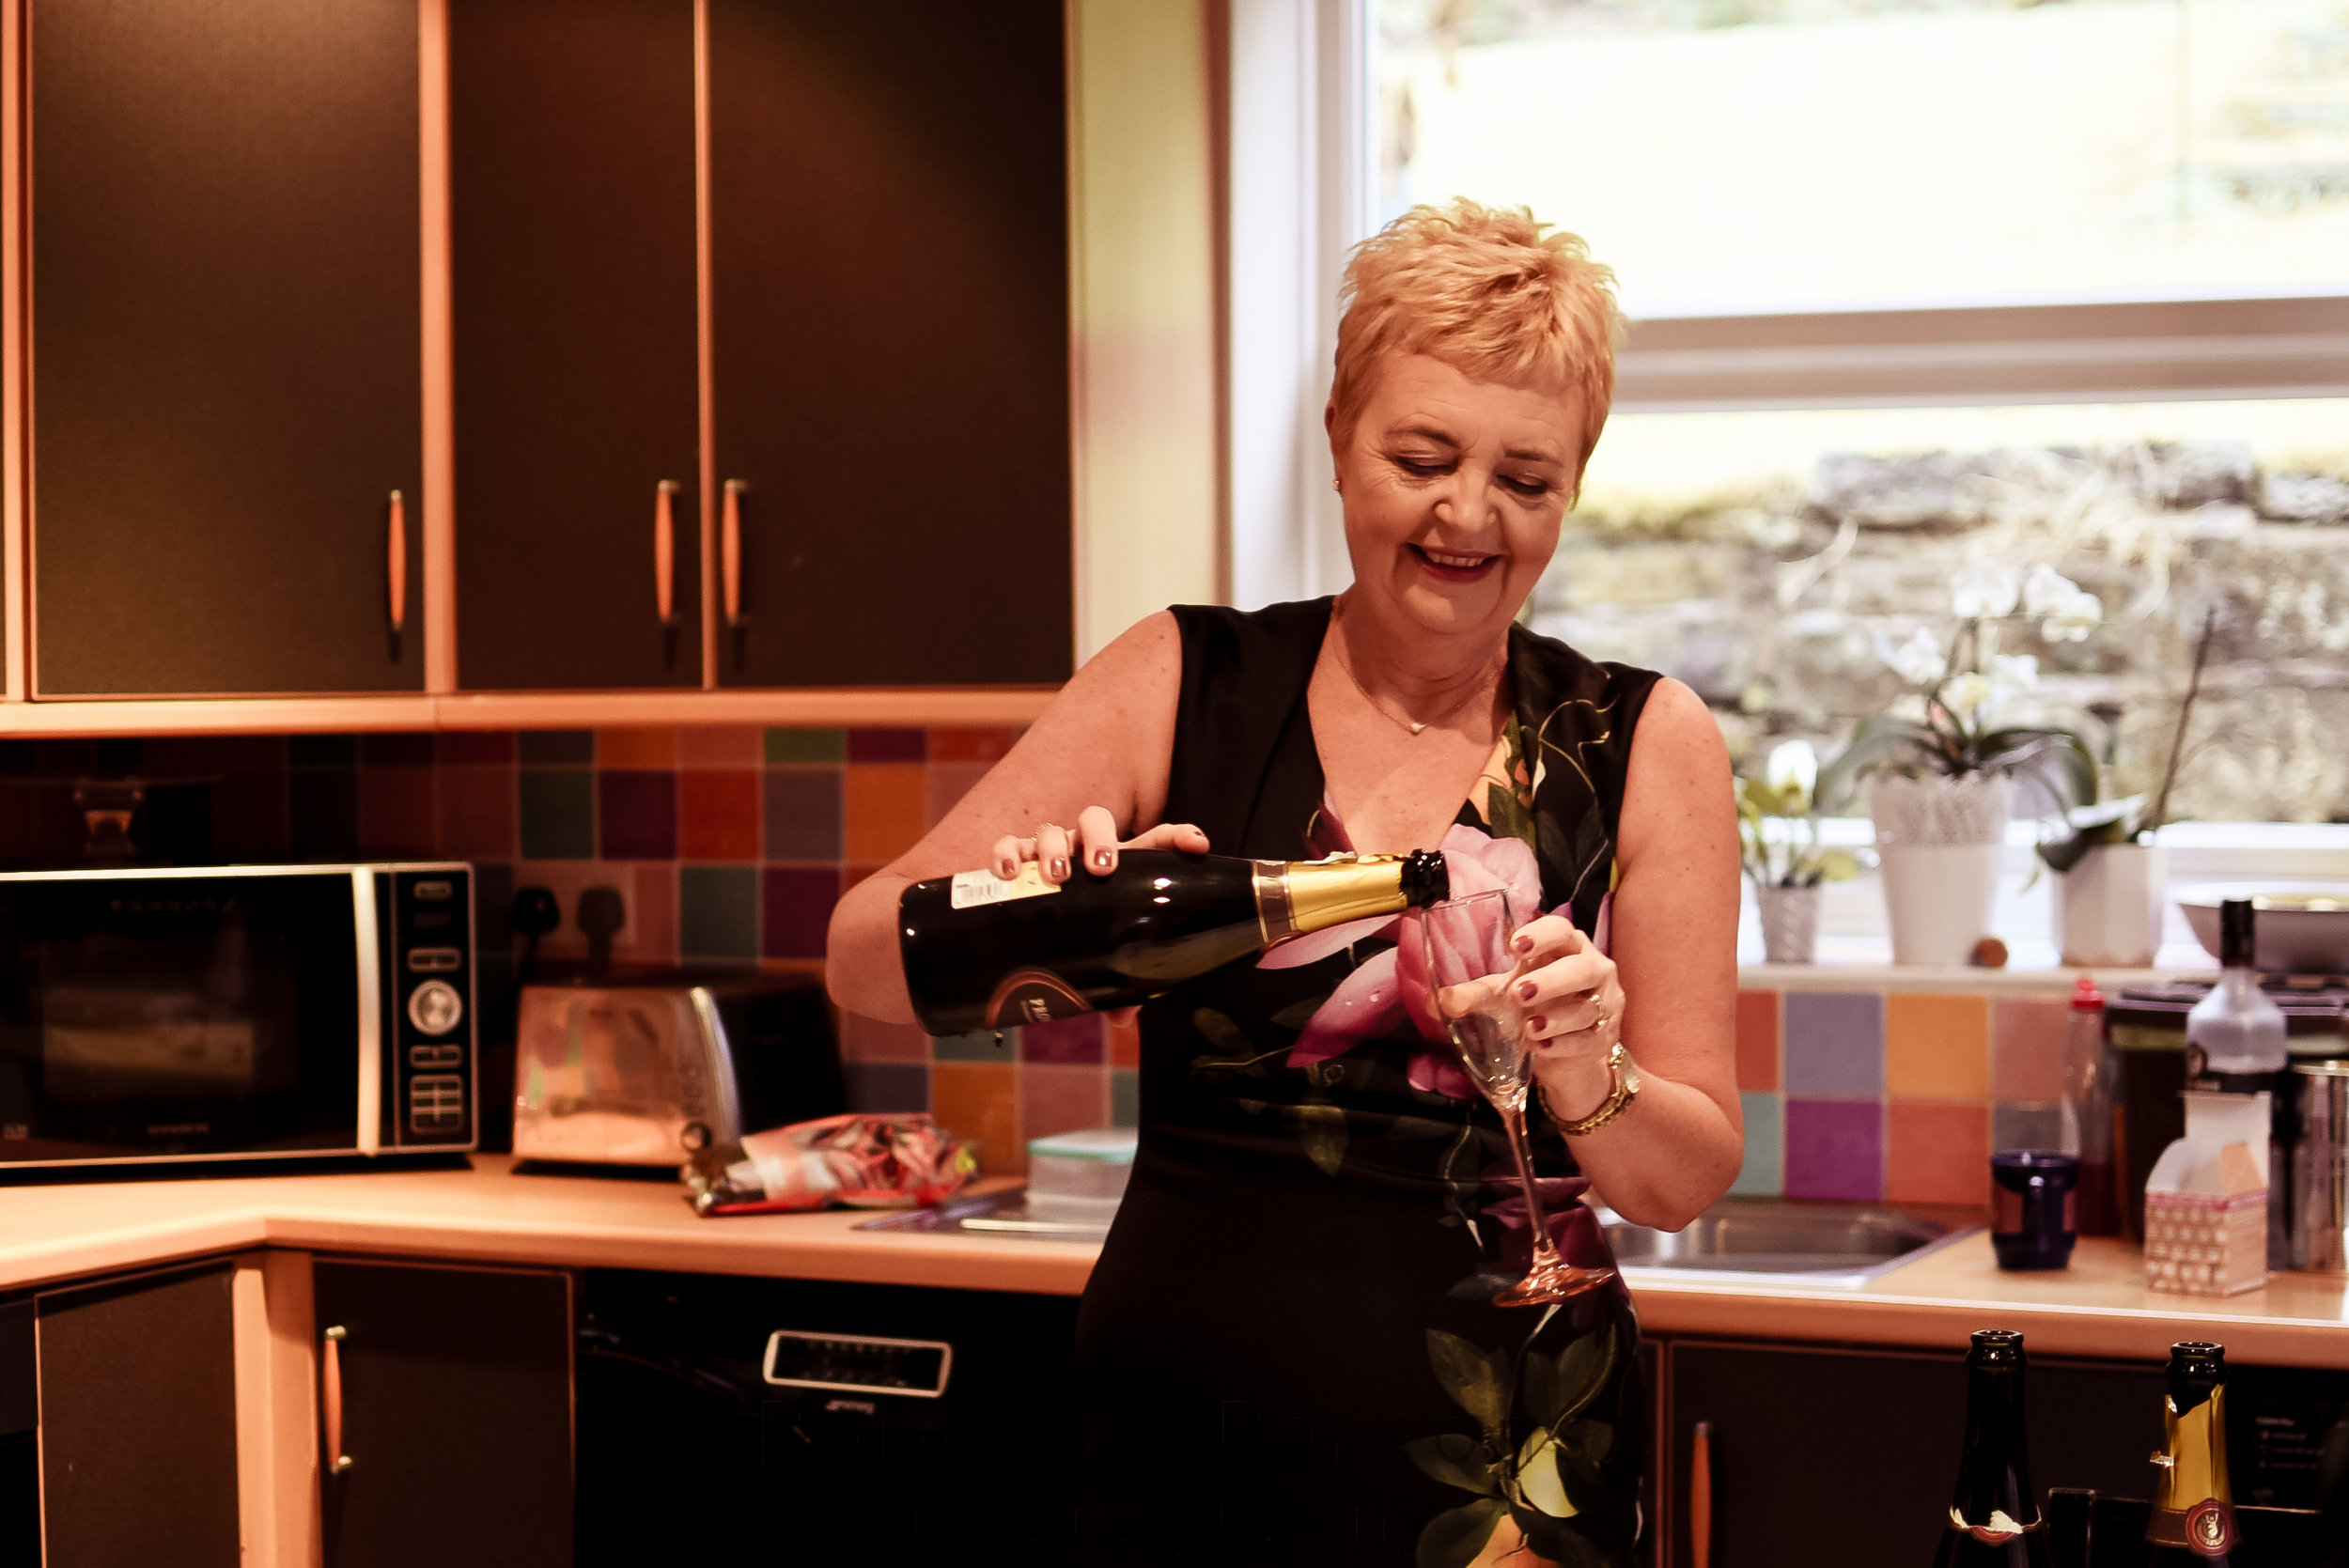 Mother of the bride pouring prosecco